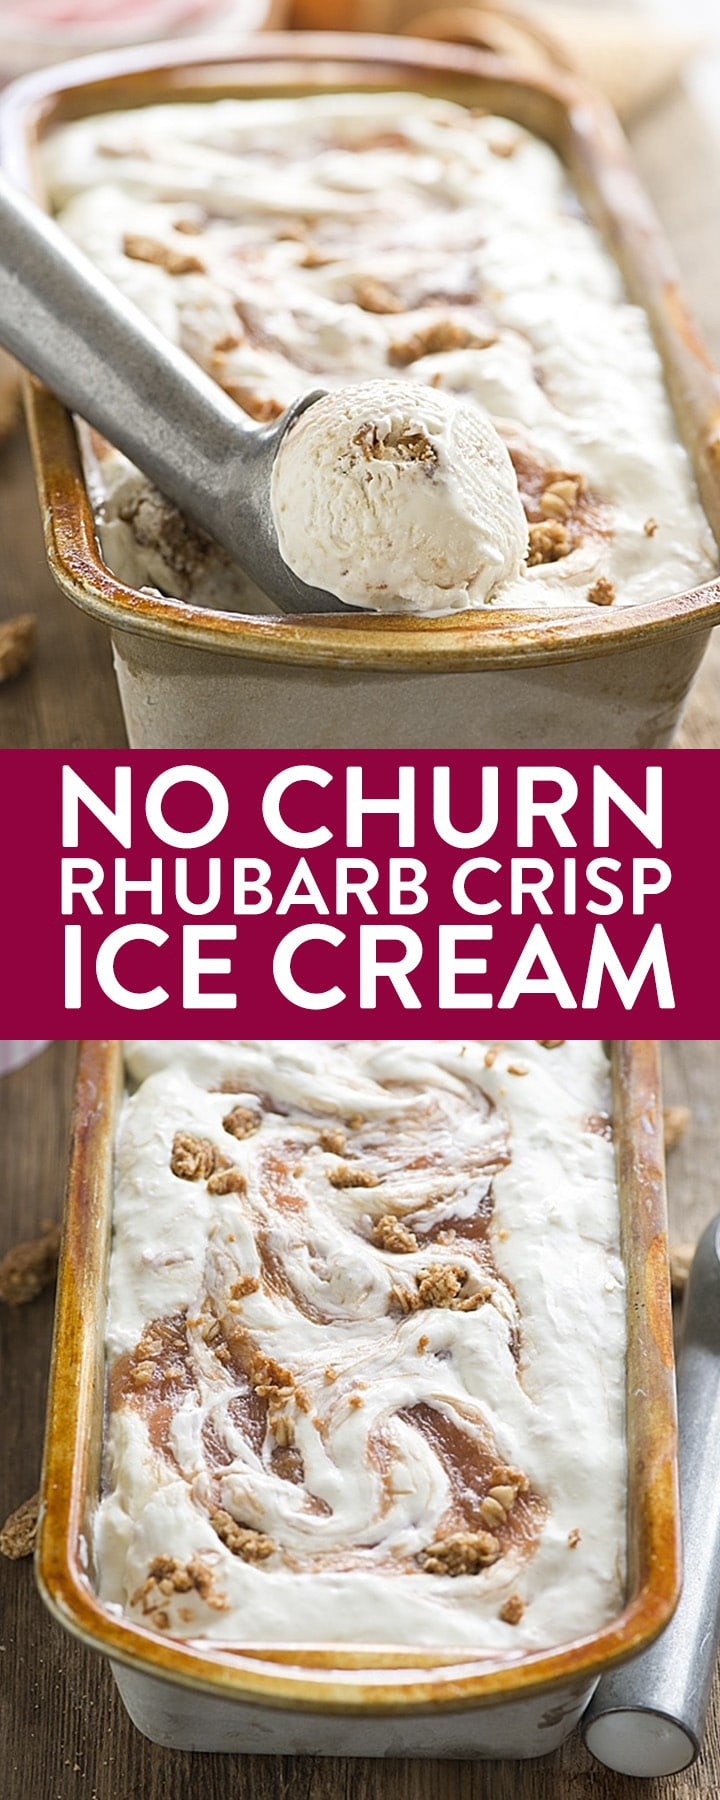 No Churn Rhubarb Crisp Ice Cream - this homemade ice cream recipe is super to make with just a few ingredients like sweetened condensed milk, whipping cream, rhubarb, and granola.